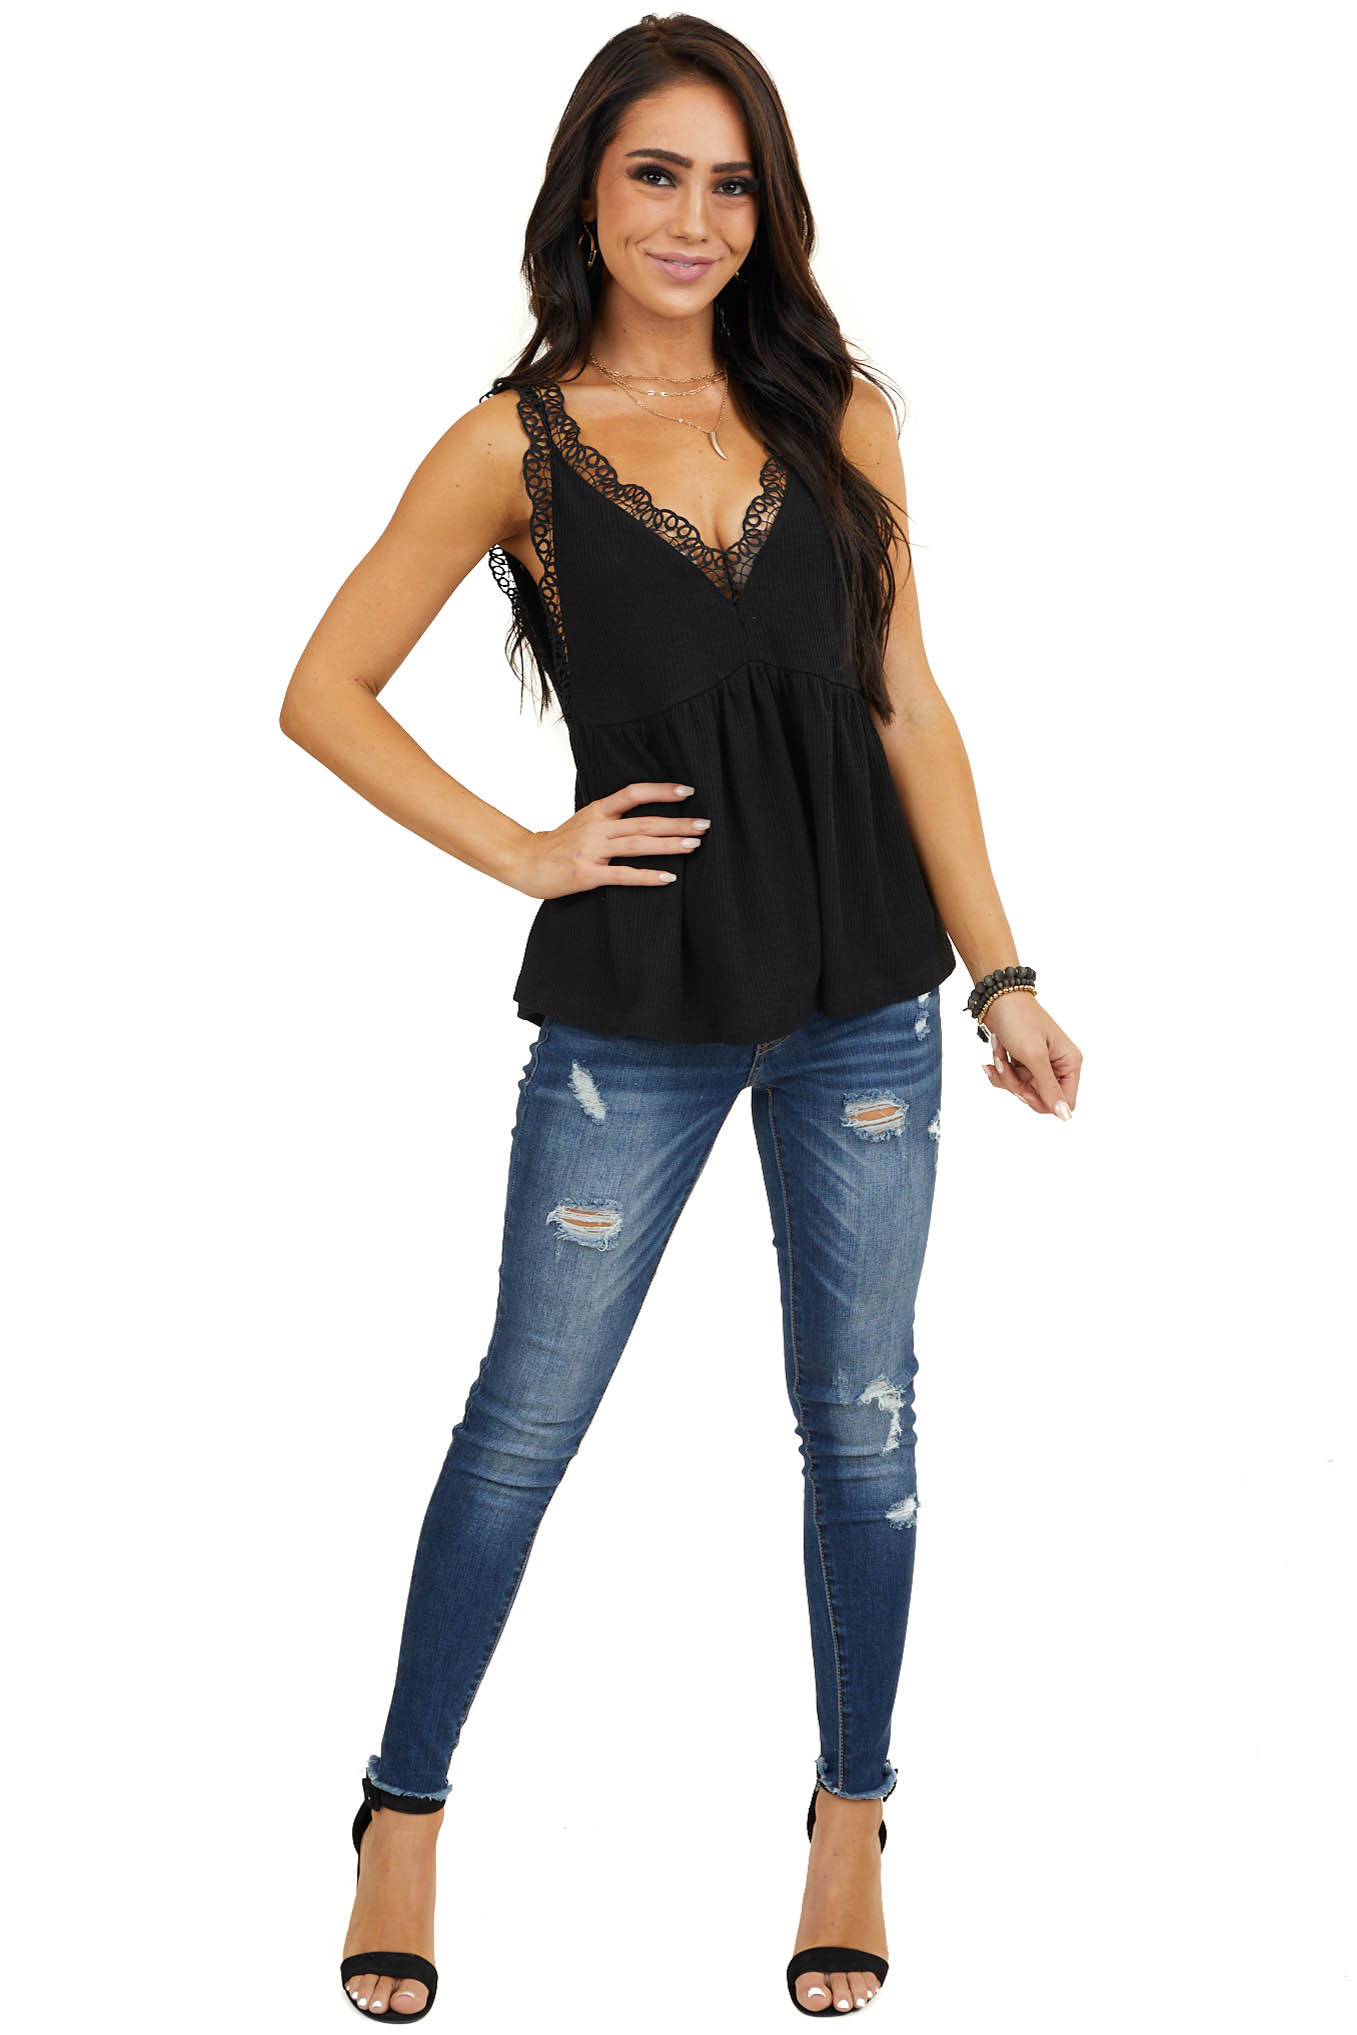 Black V Neck Tank Top with Crochet Lace Trim